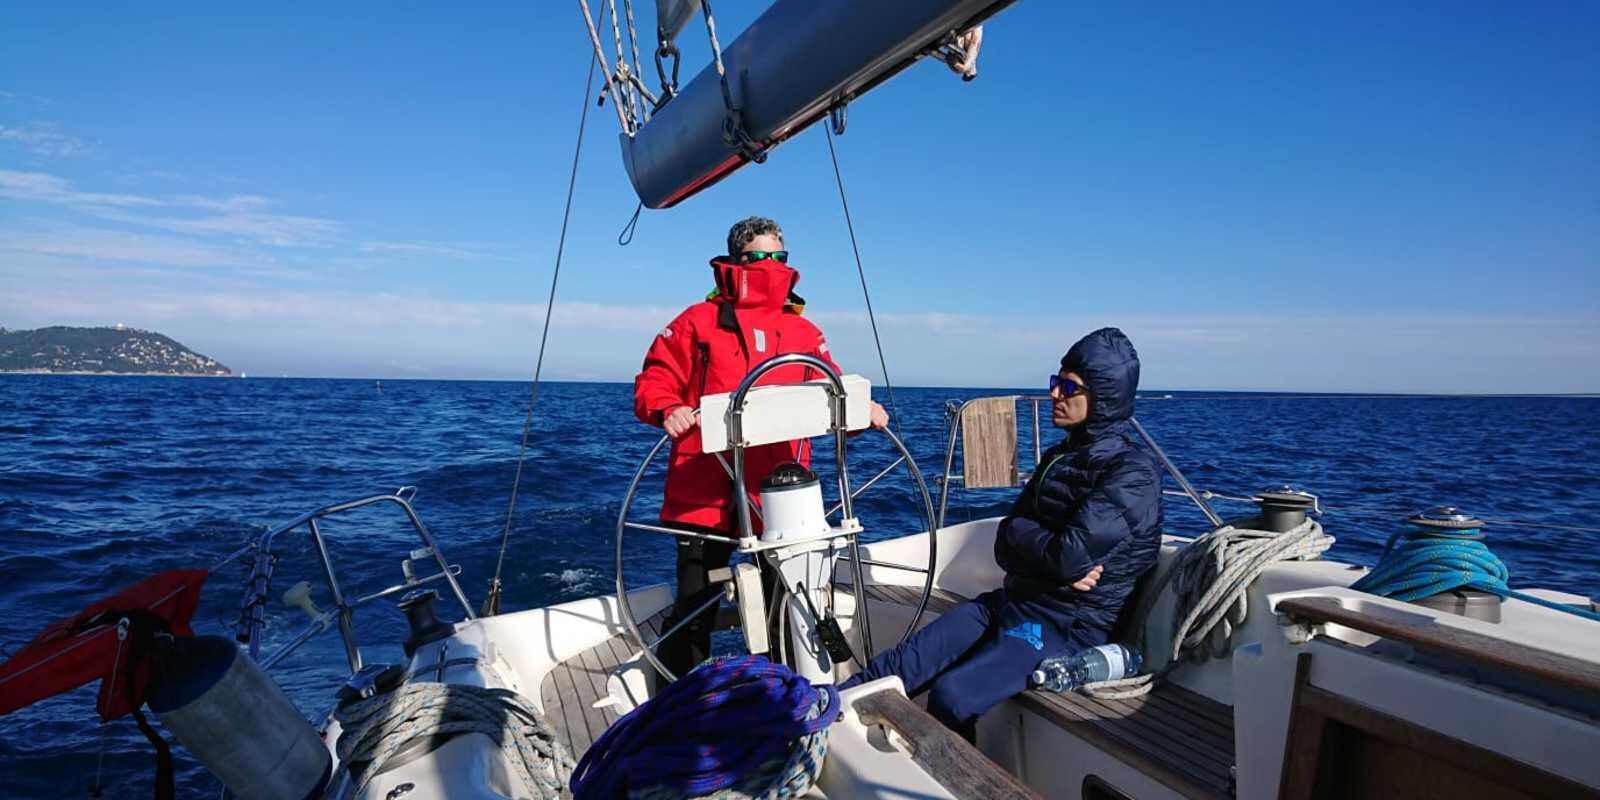 Mooring, night navigation and safety at sea course